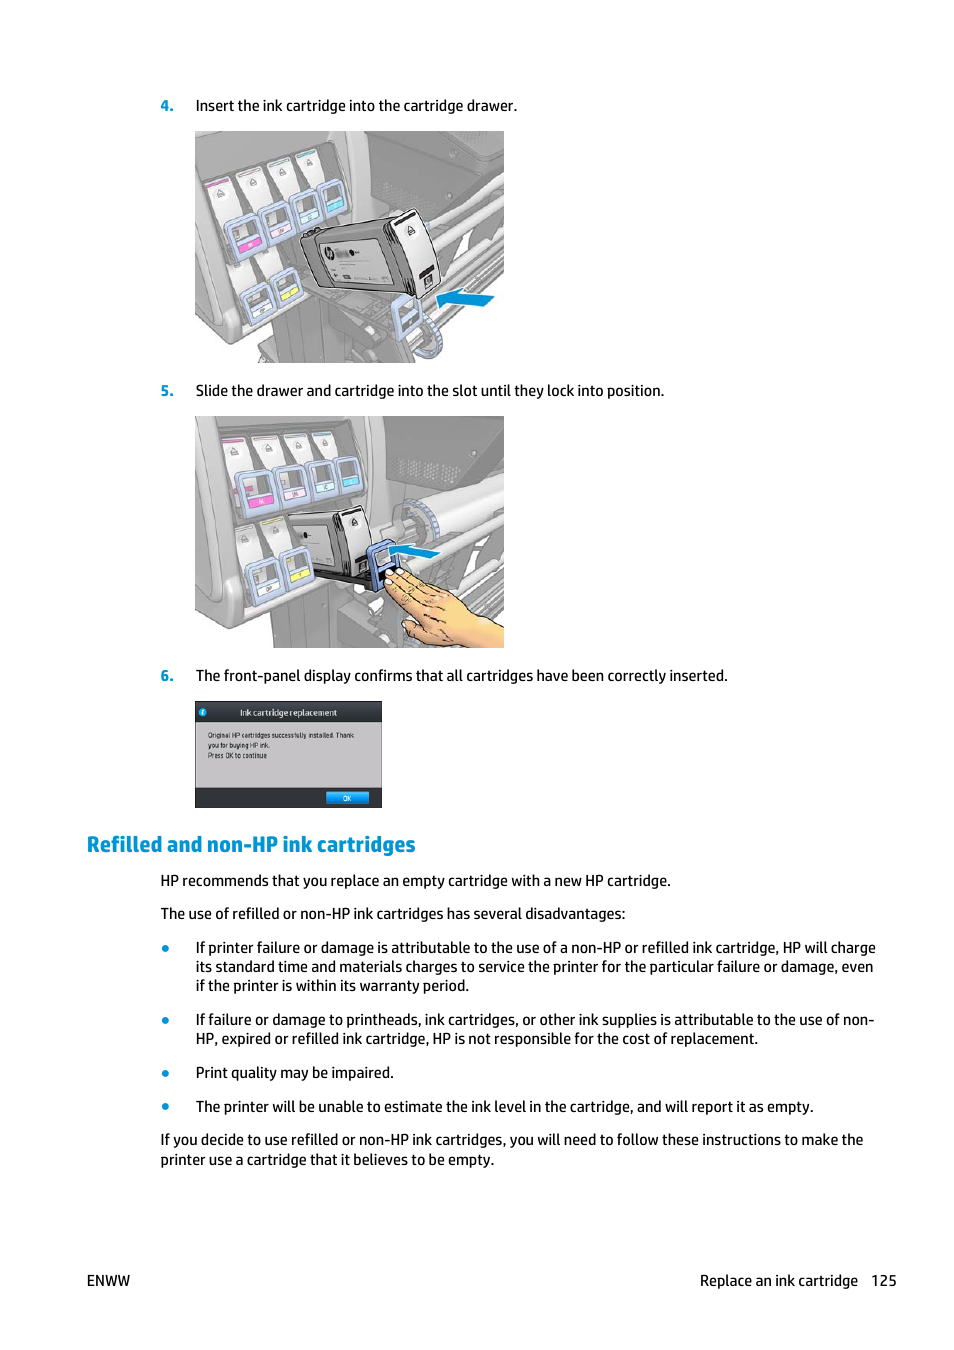 Refilled and non-hp ink cartridges | HP Latex 360 Printer User Manual | Page